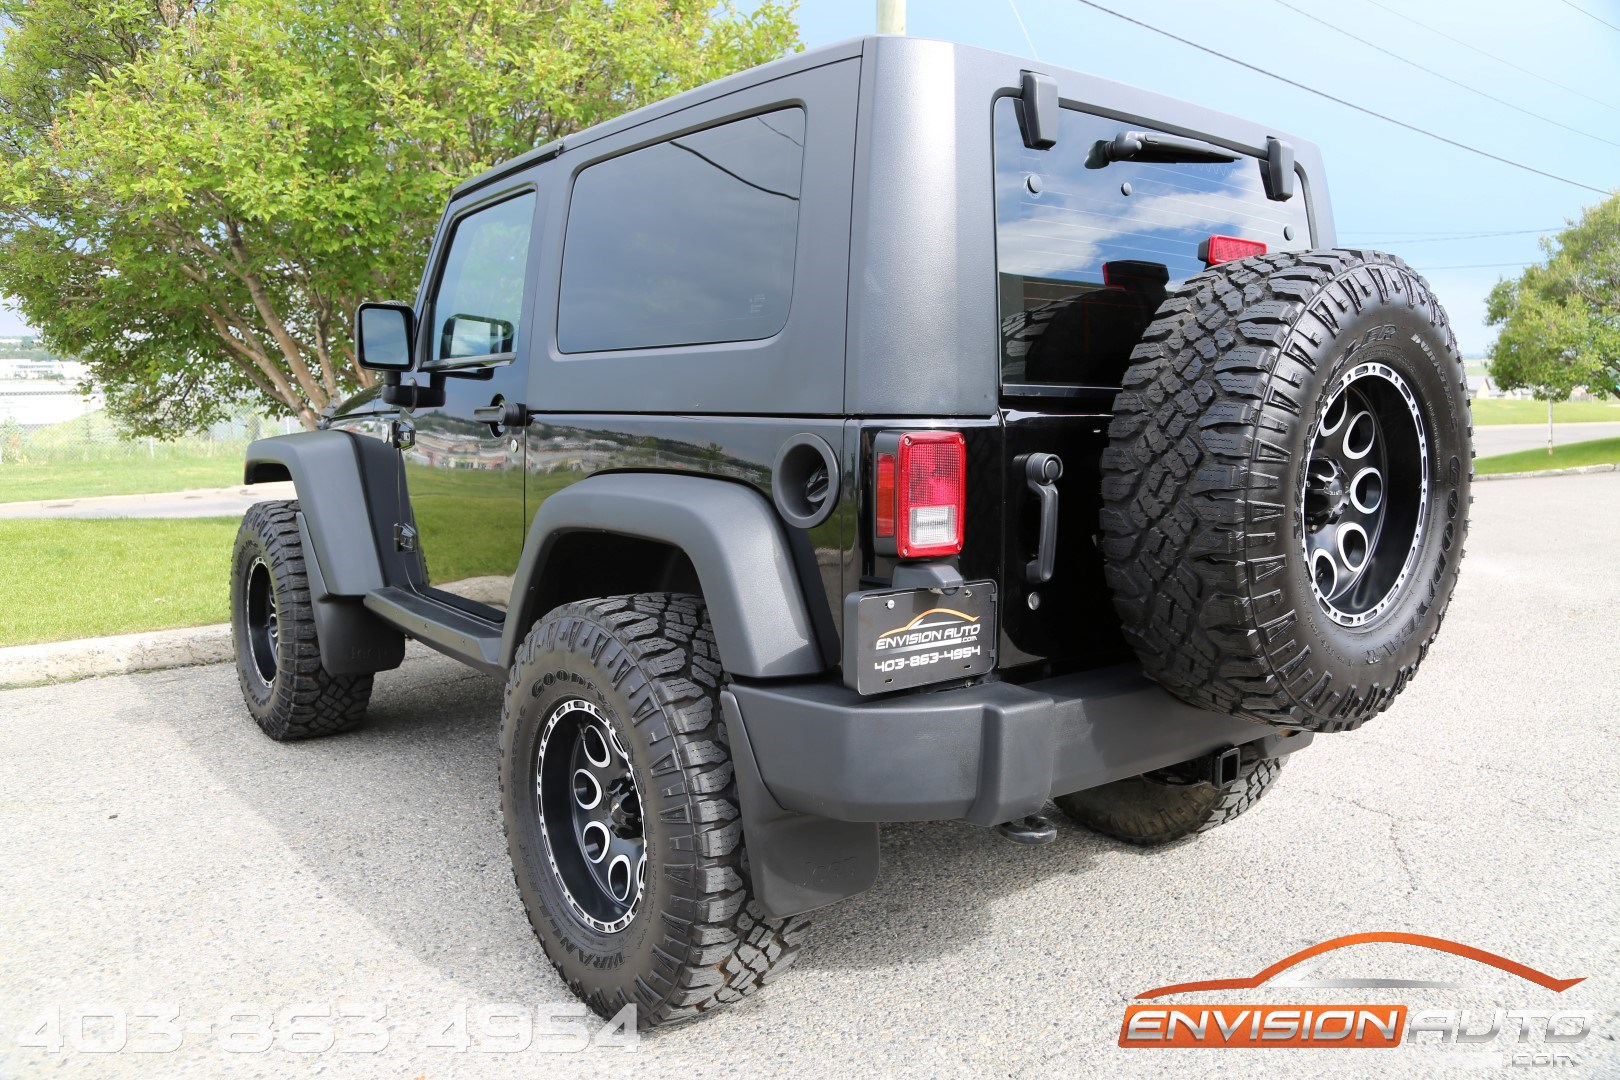 2010 jeep wrangler custom lift winch bumper led lights envision auto. Black Bedroom Furniture Sets. Home Design Ideas